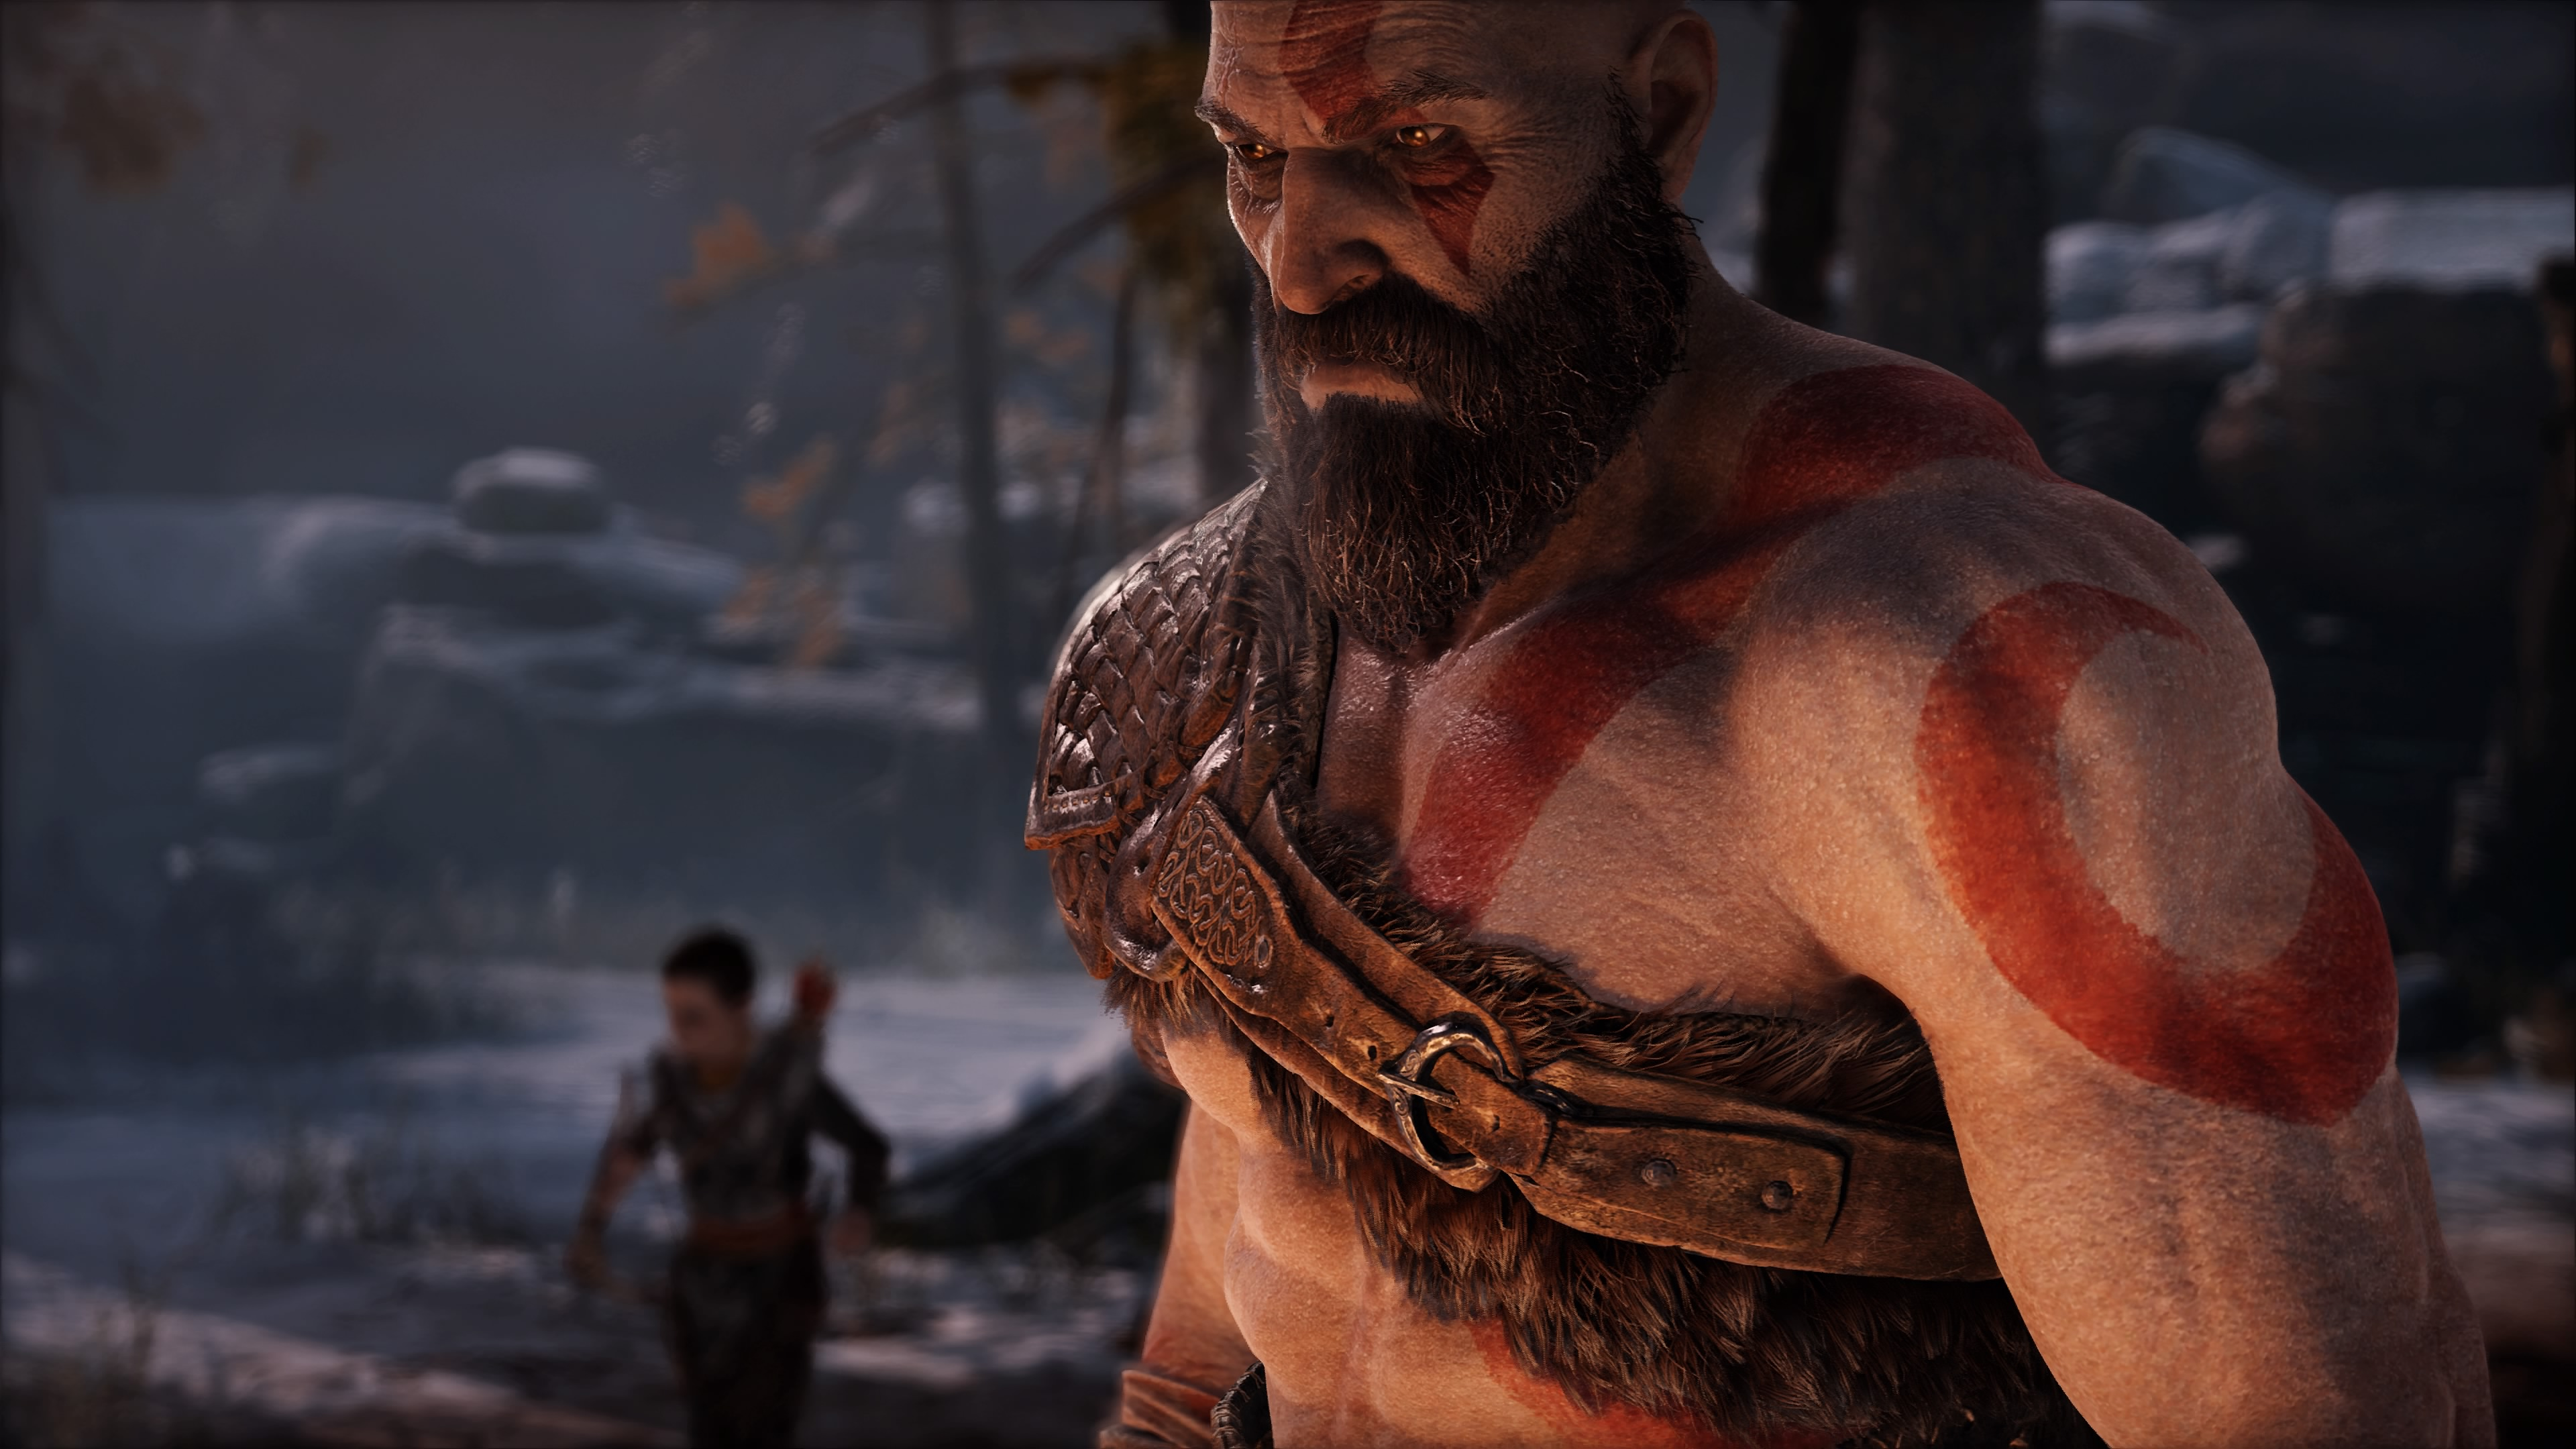 <em>God of War</em> is on sale at several retailers this Black Friday.